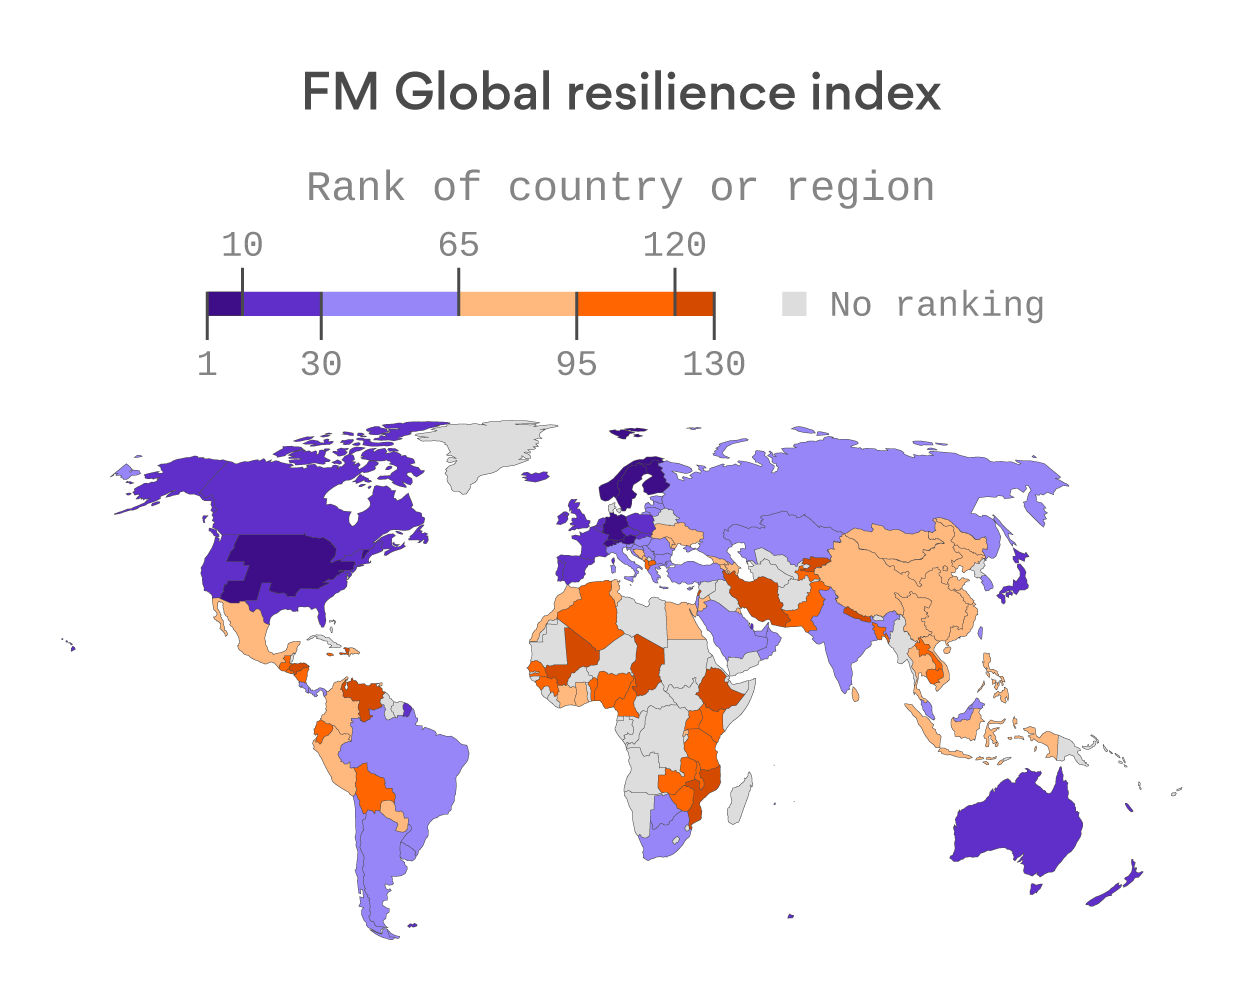 Norway is the world's most economically resilient country